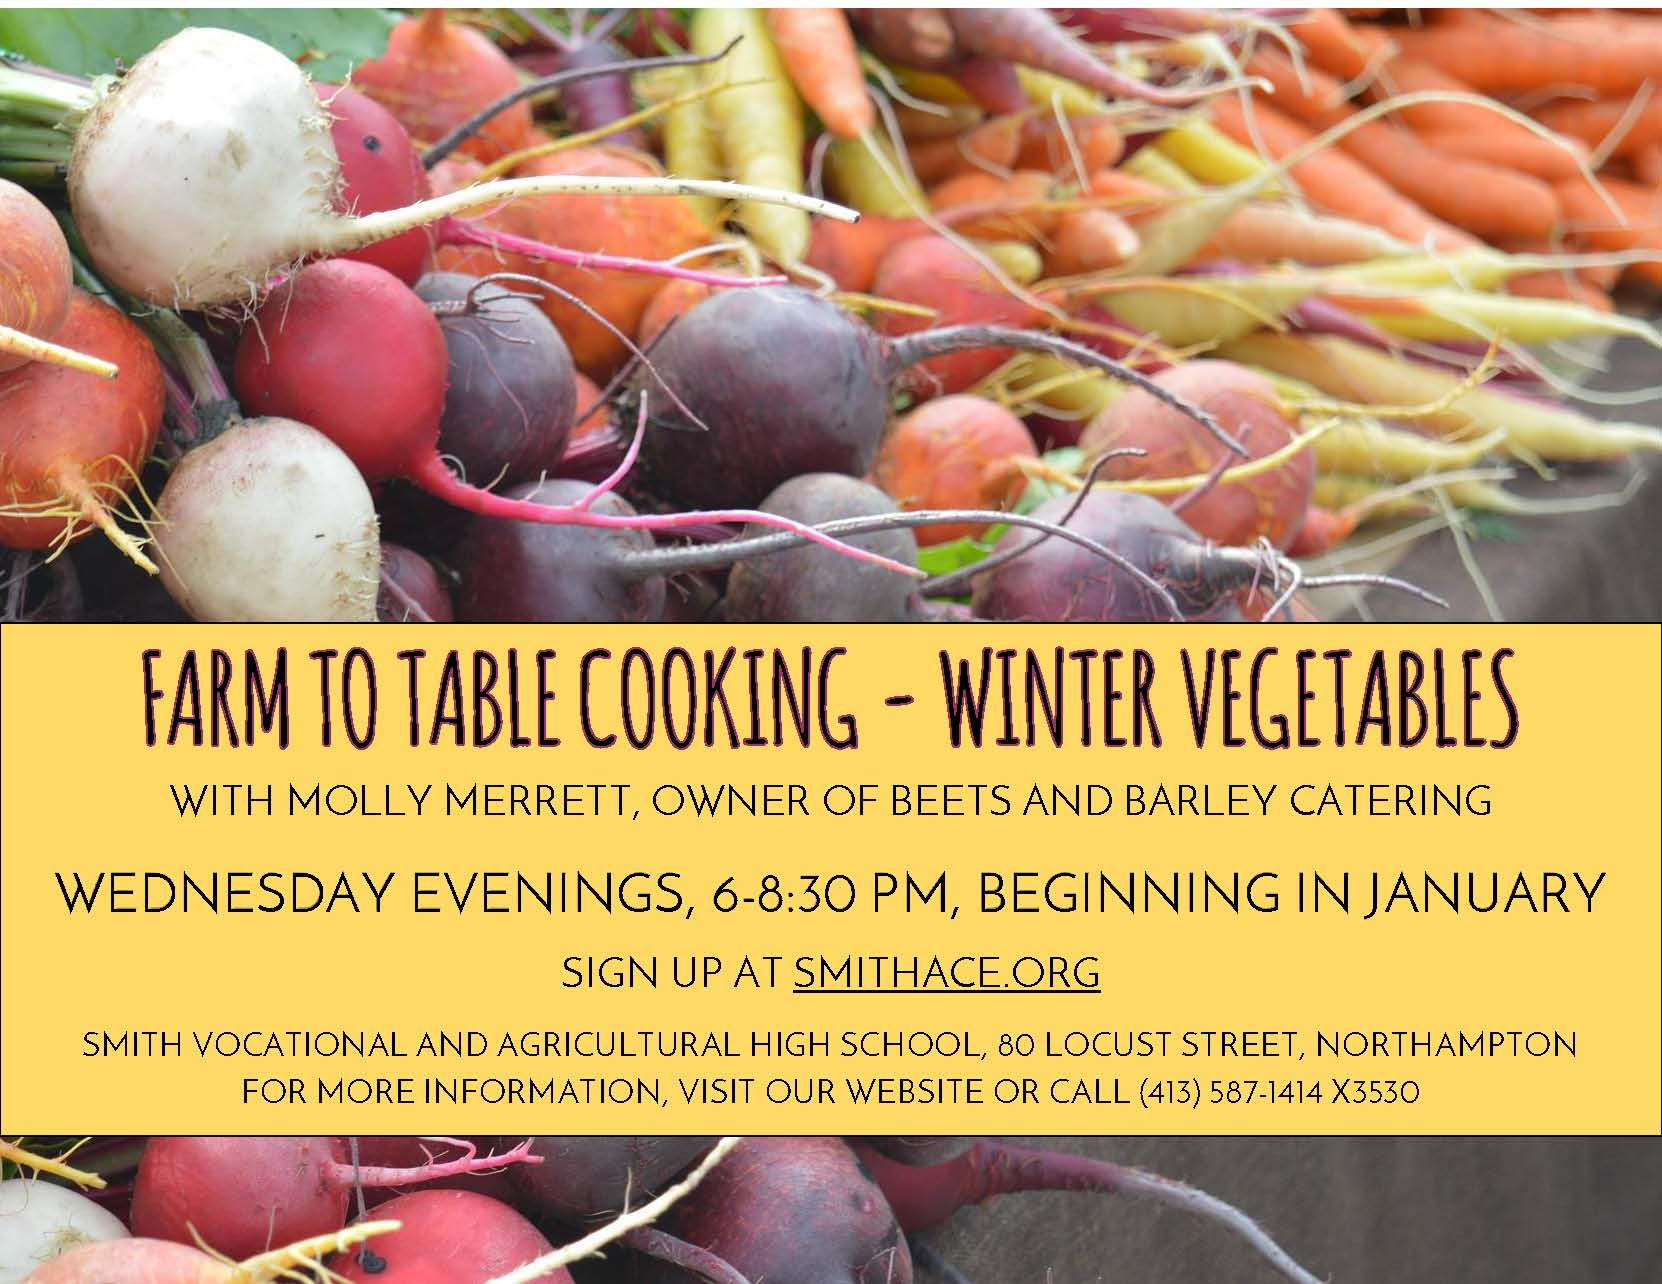 farm-to-table-cooking-flyer